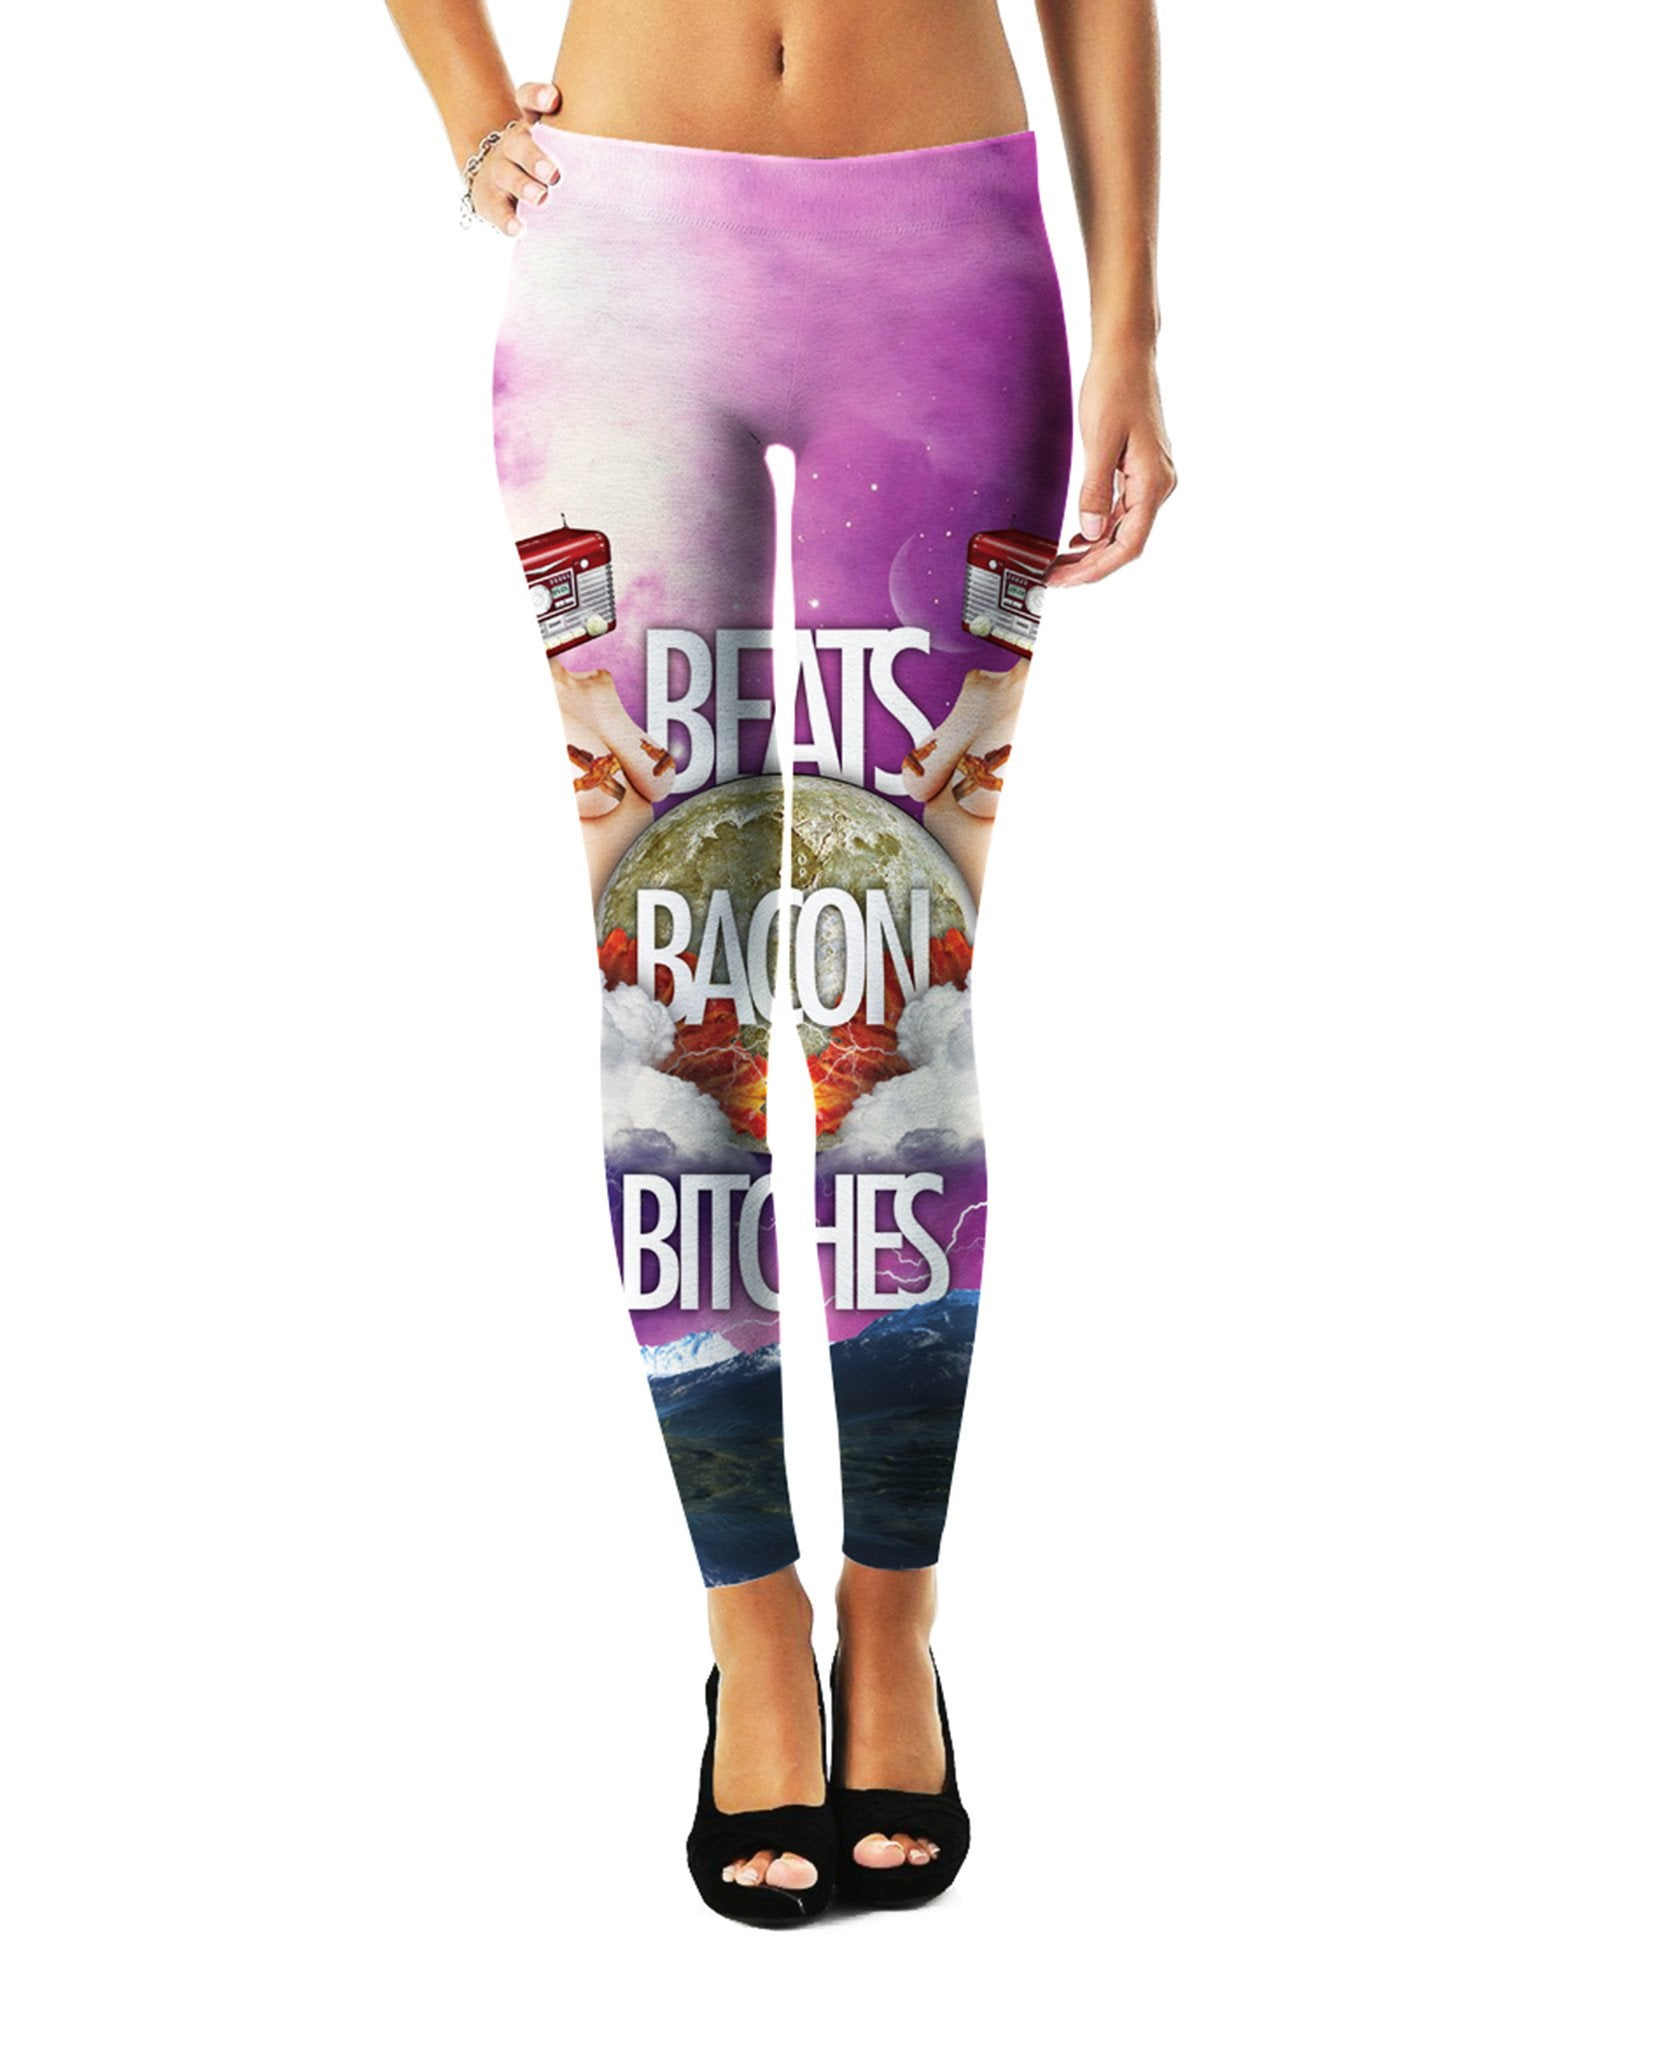 Beats Bacon Bitches Leggings/Plus Sizes Available/XS - 5XL